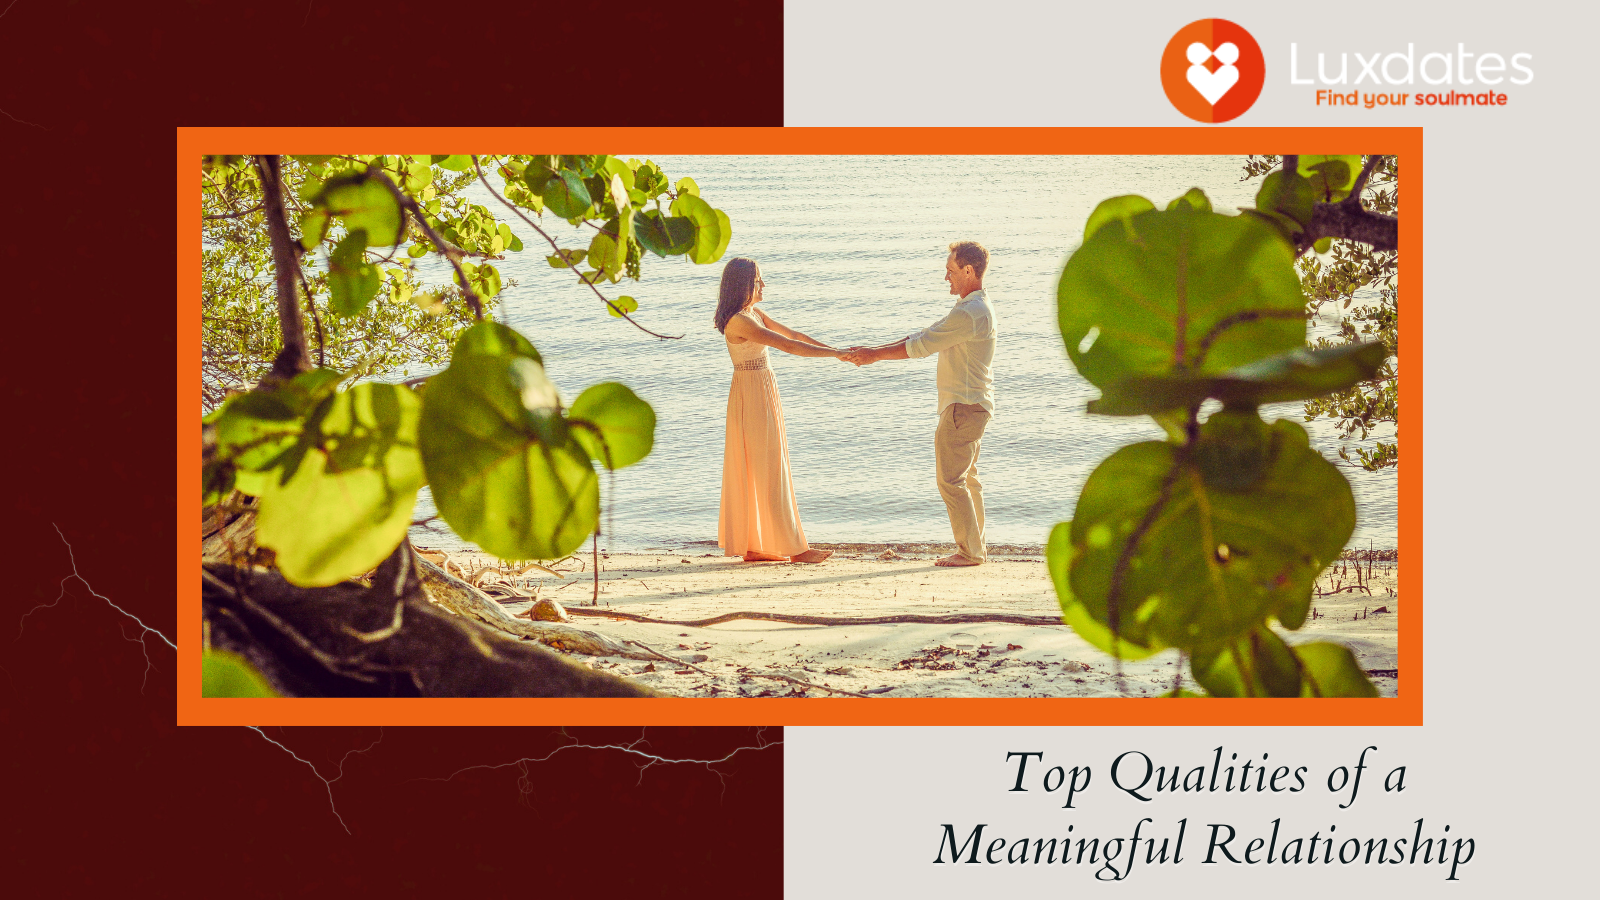 Top qualities fo meaningful relationship